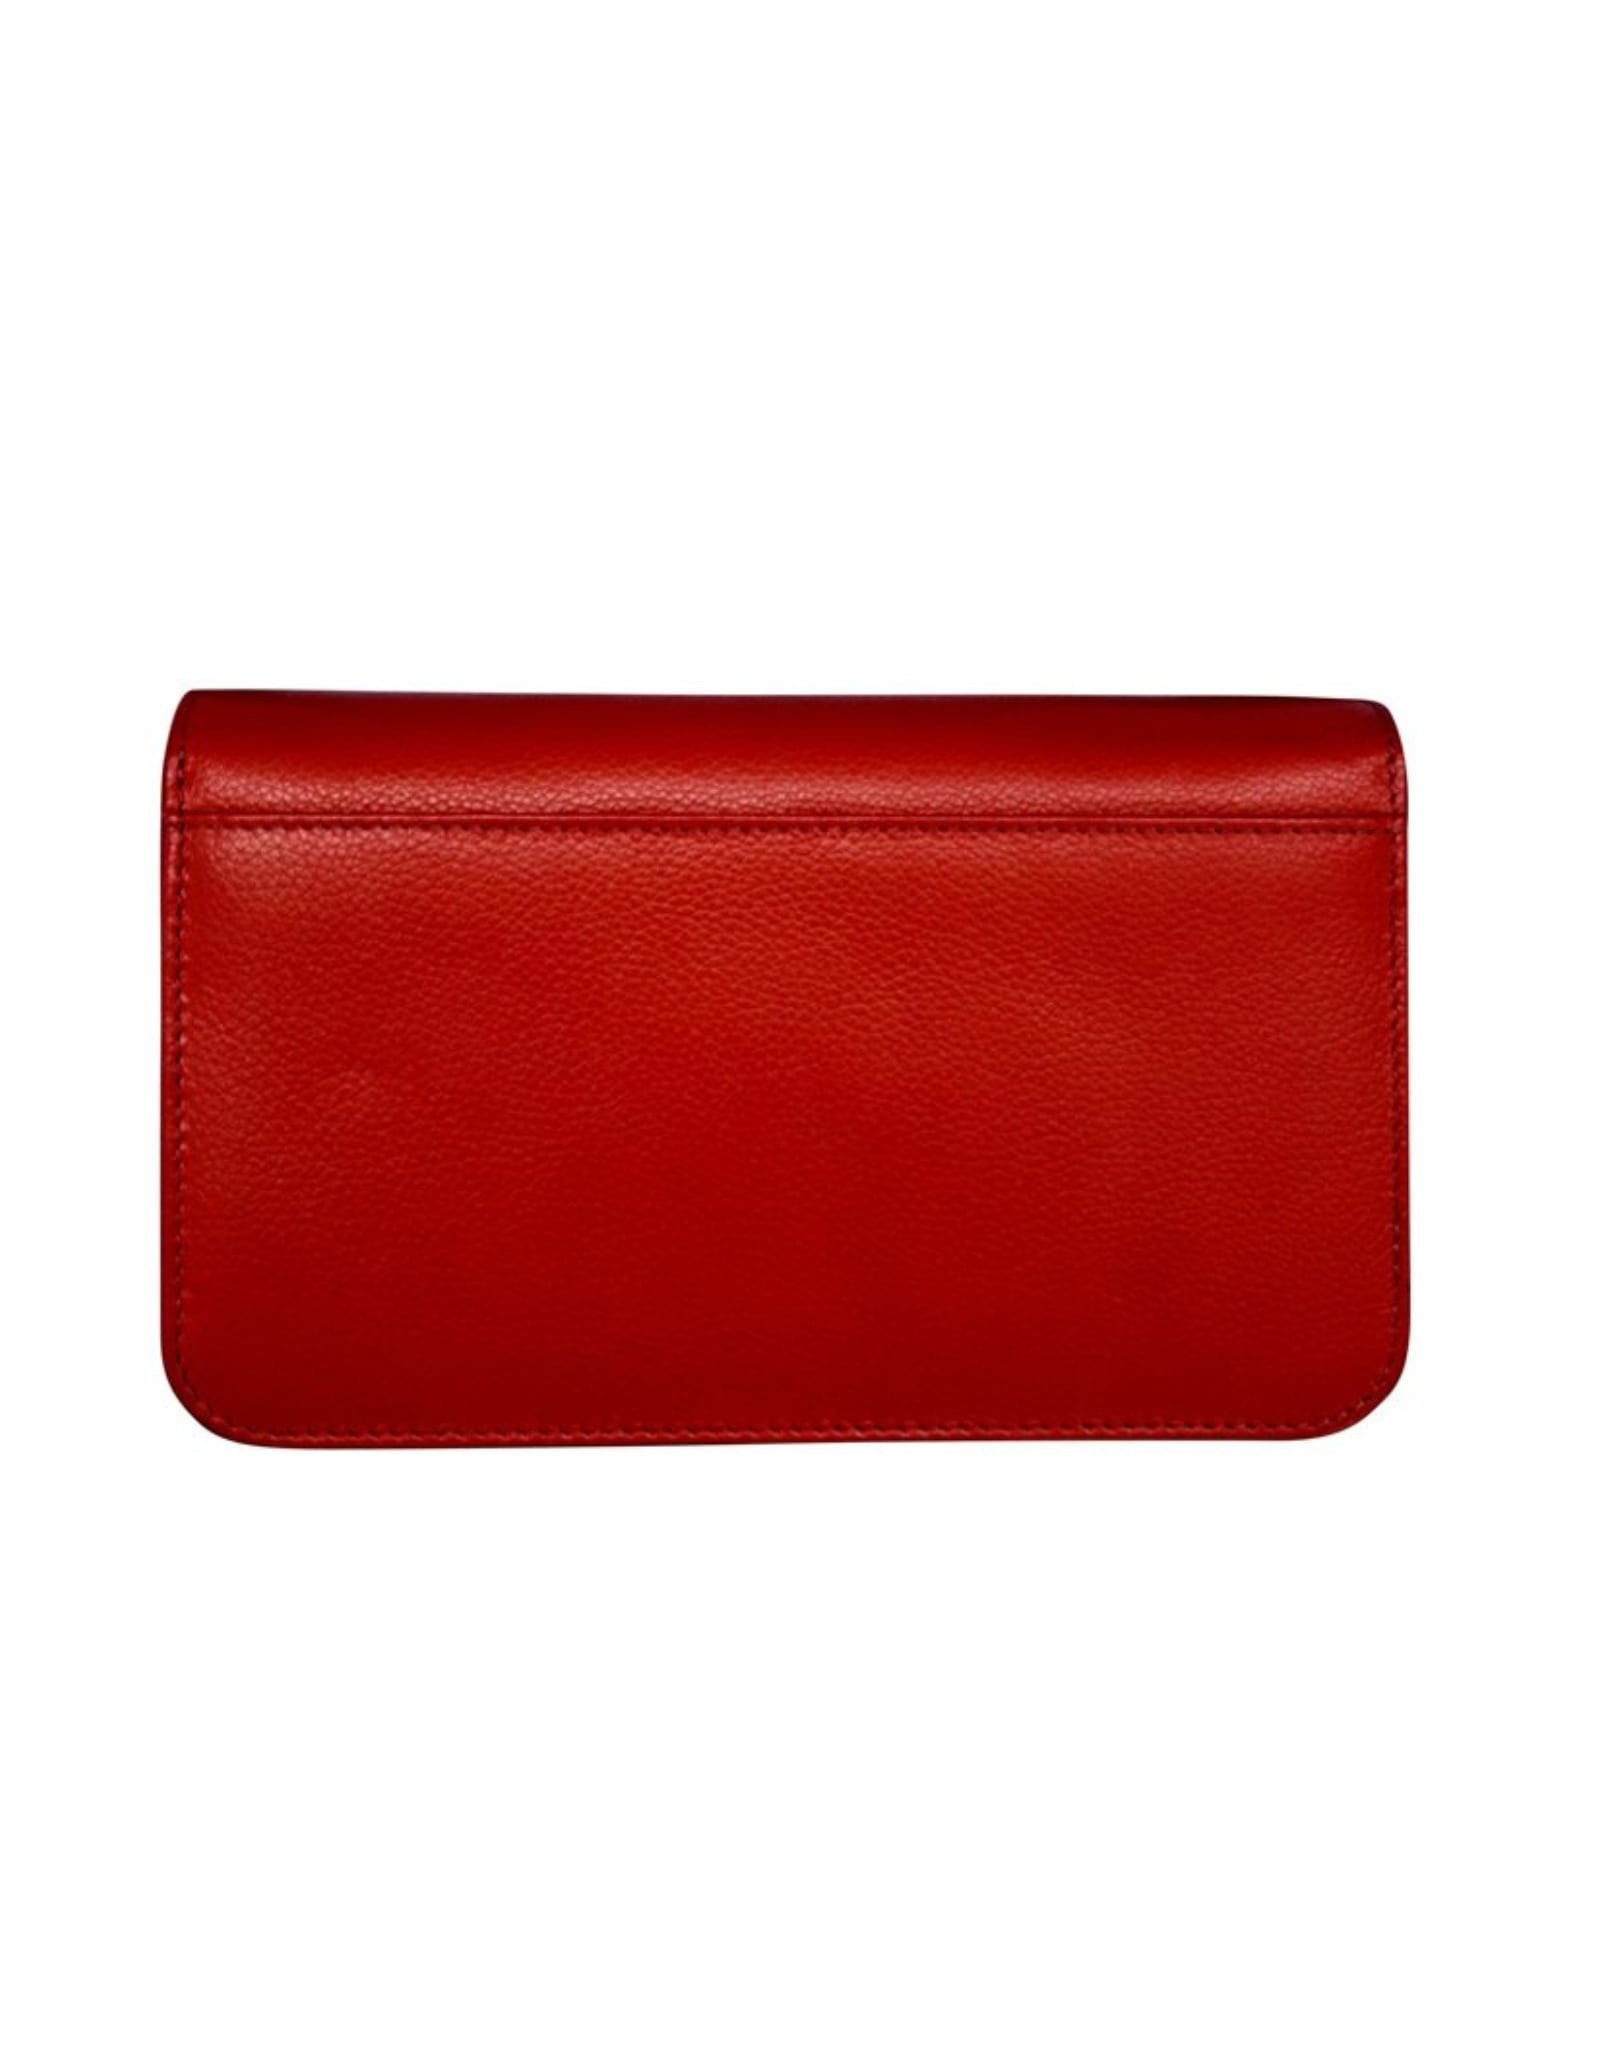 Smart Phone Crossbody Red